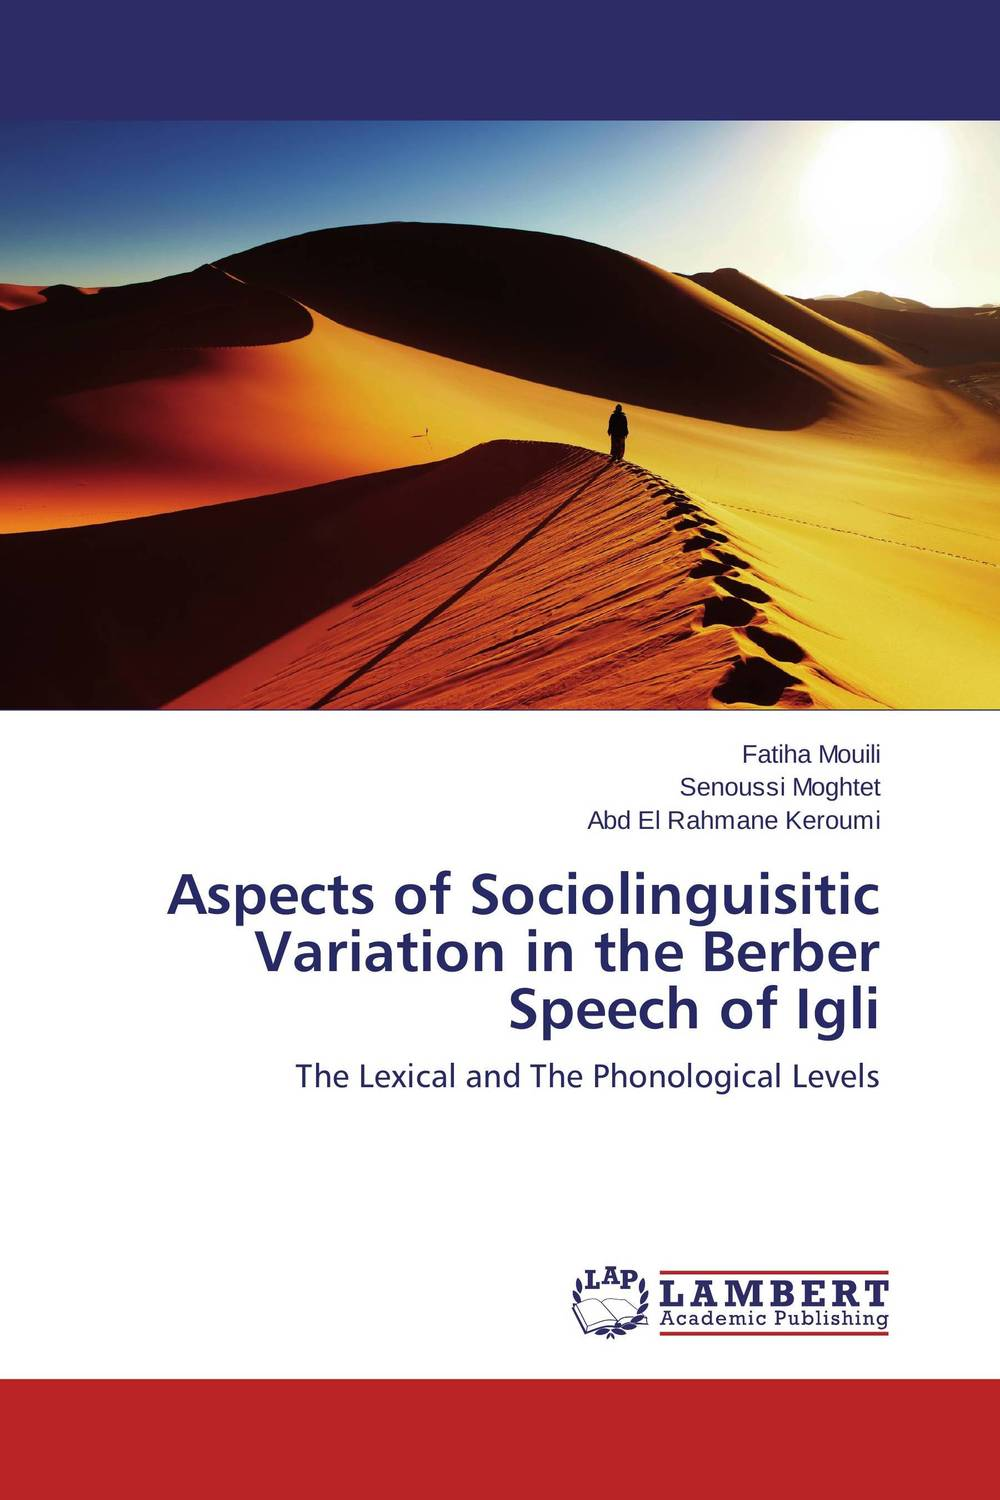 Aspects of Sociolinguisitic Variation in the Berber Speech of Igli language change and lexical variation in youth language